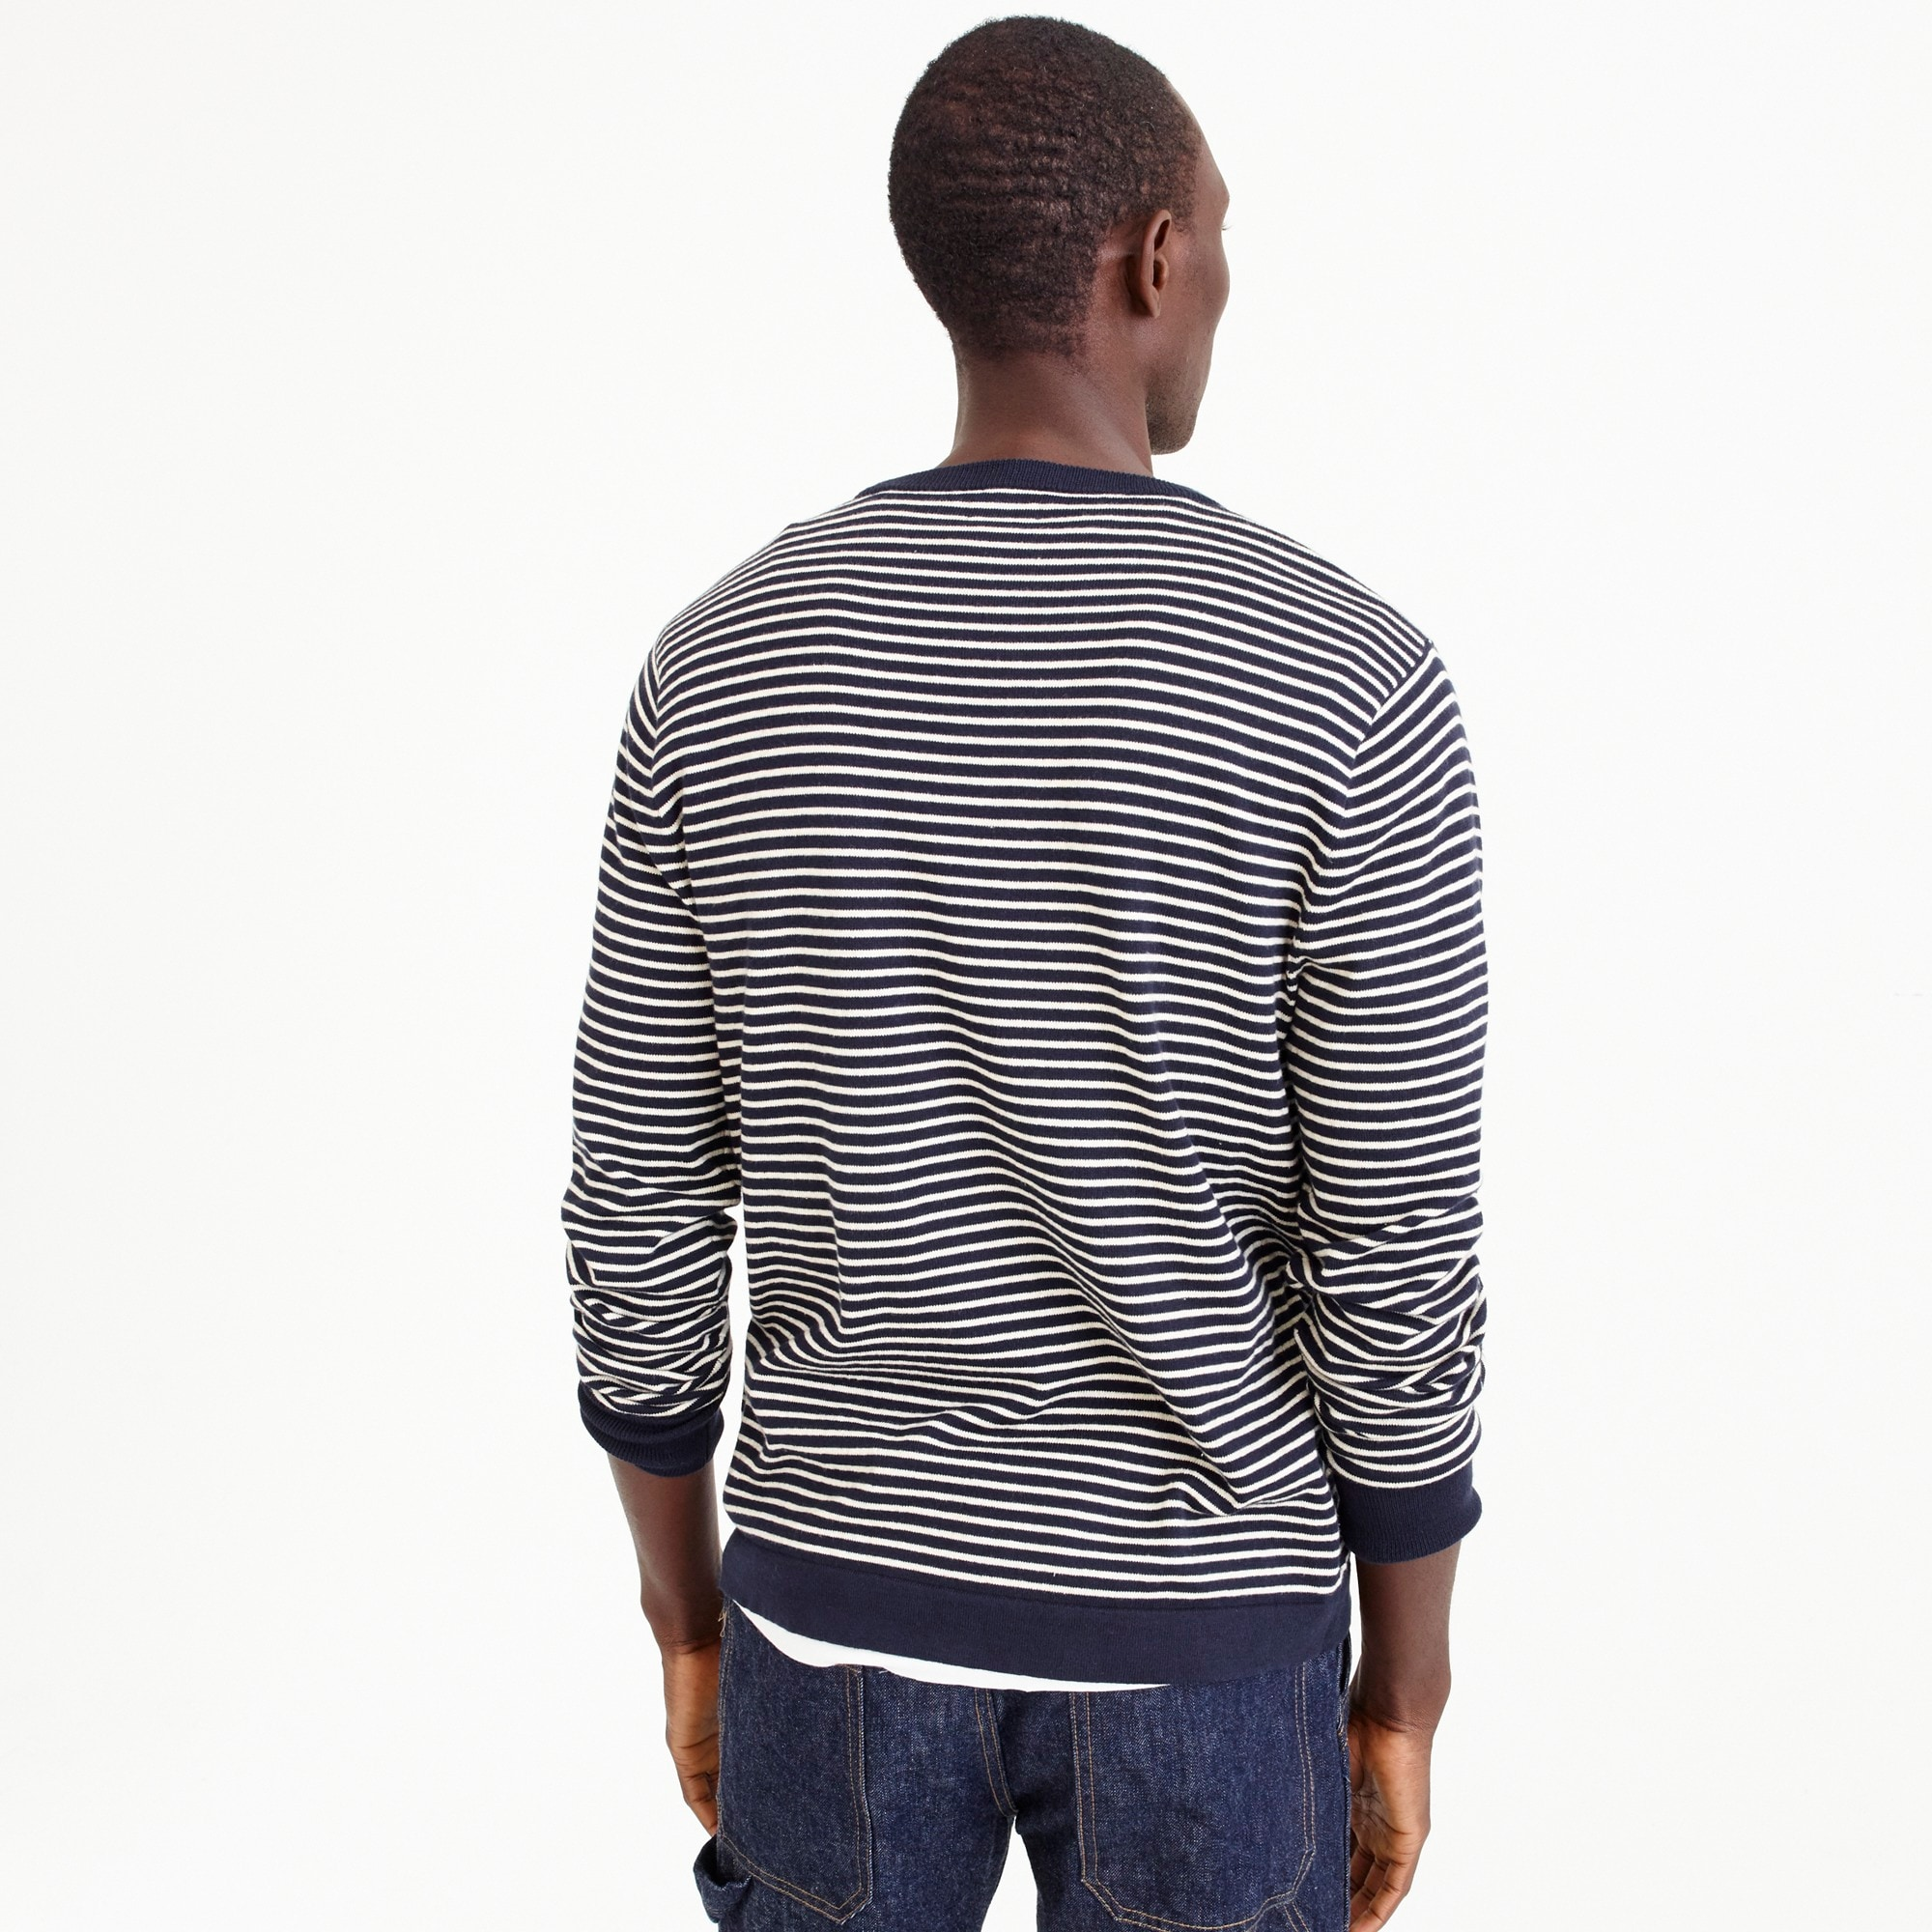 Cotton crewneck in dark indigo stripe